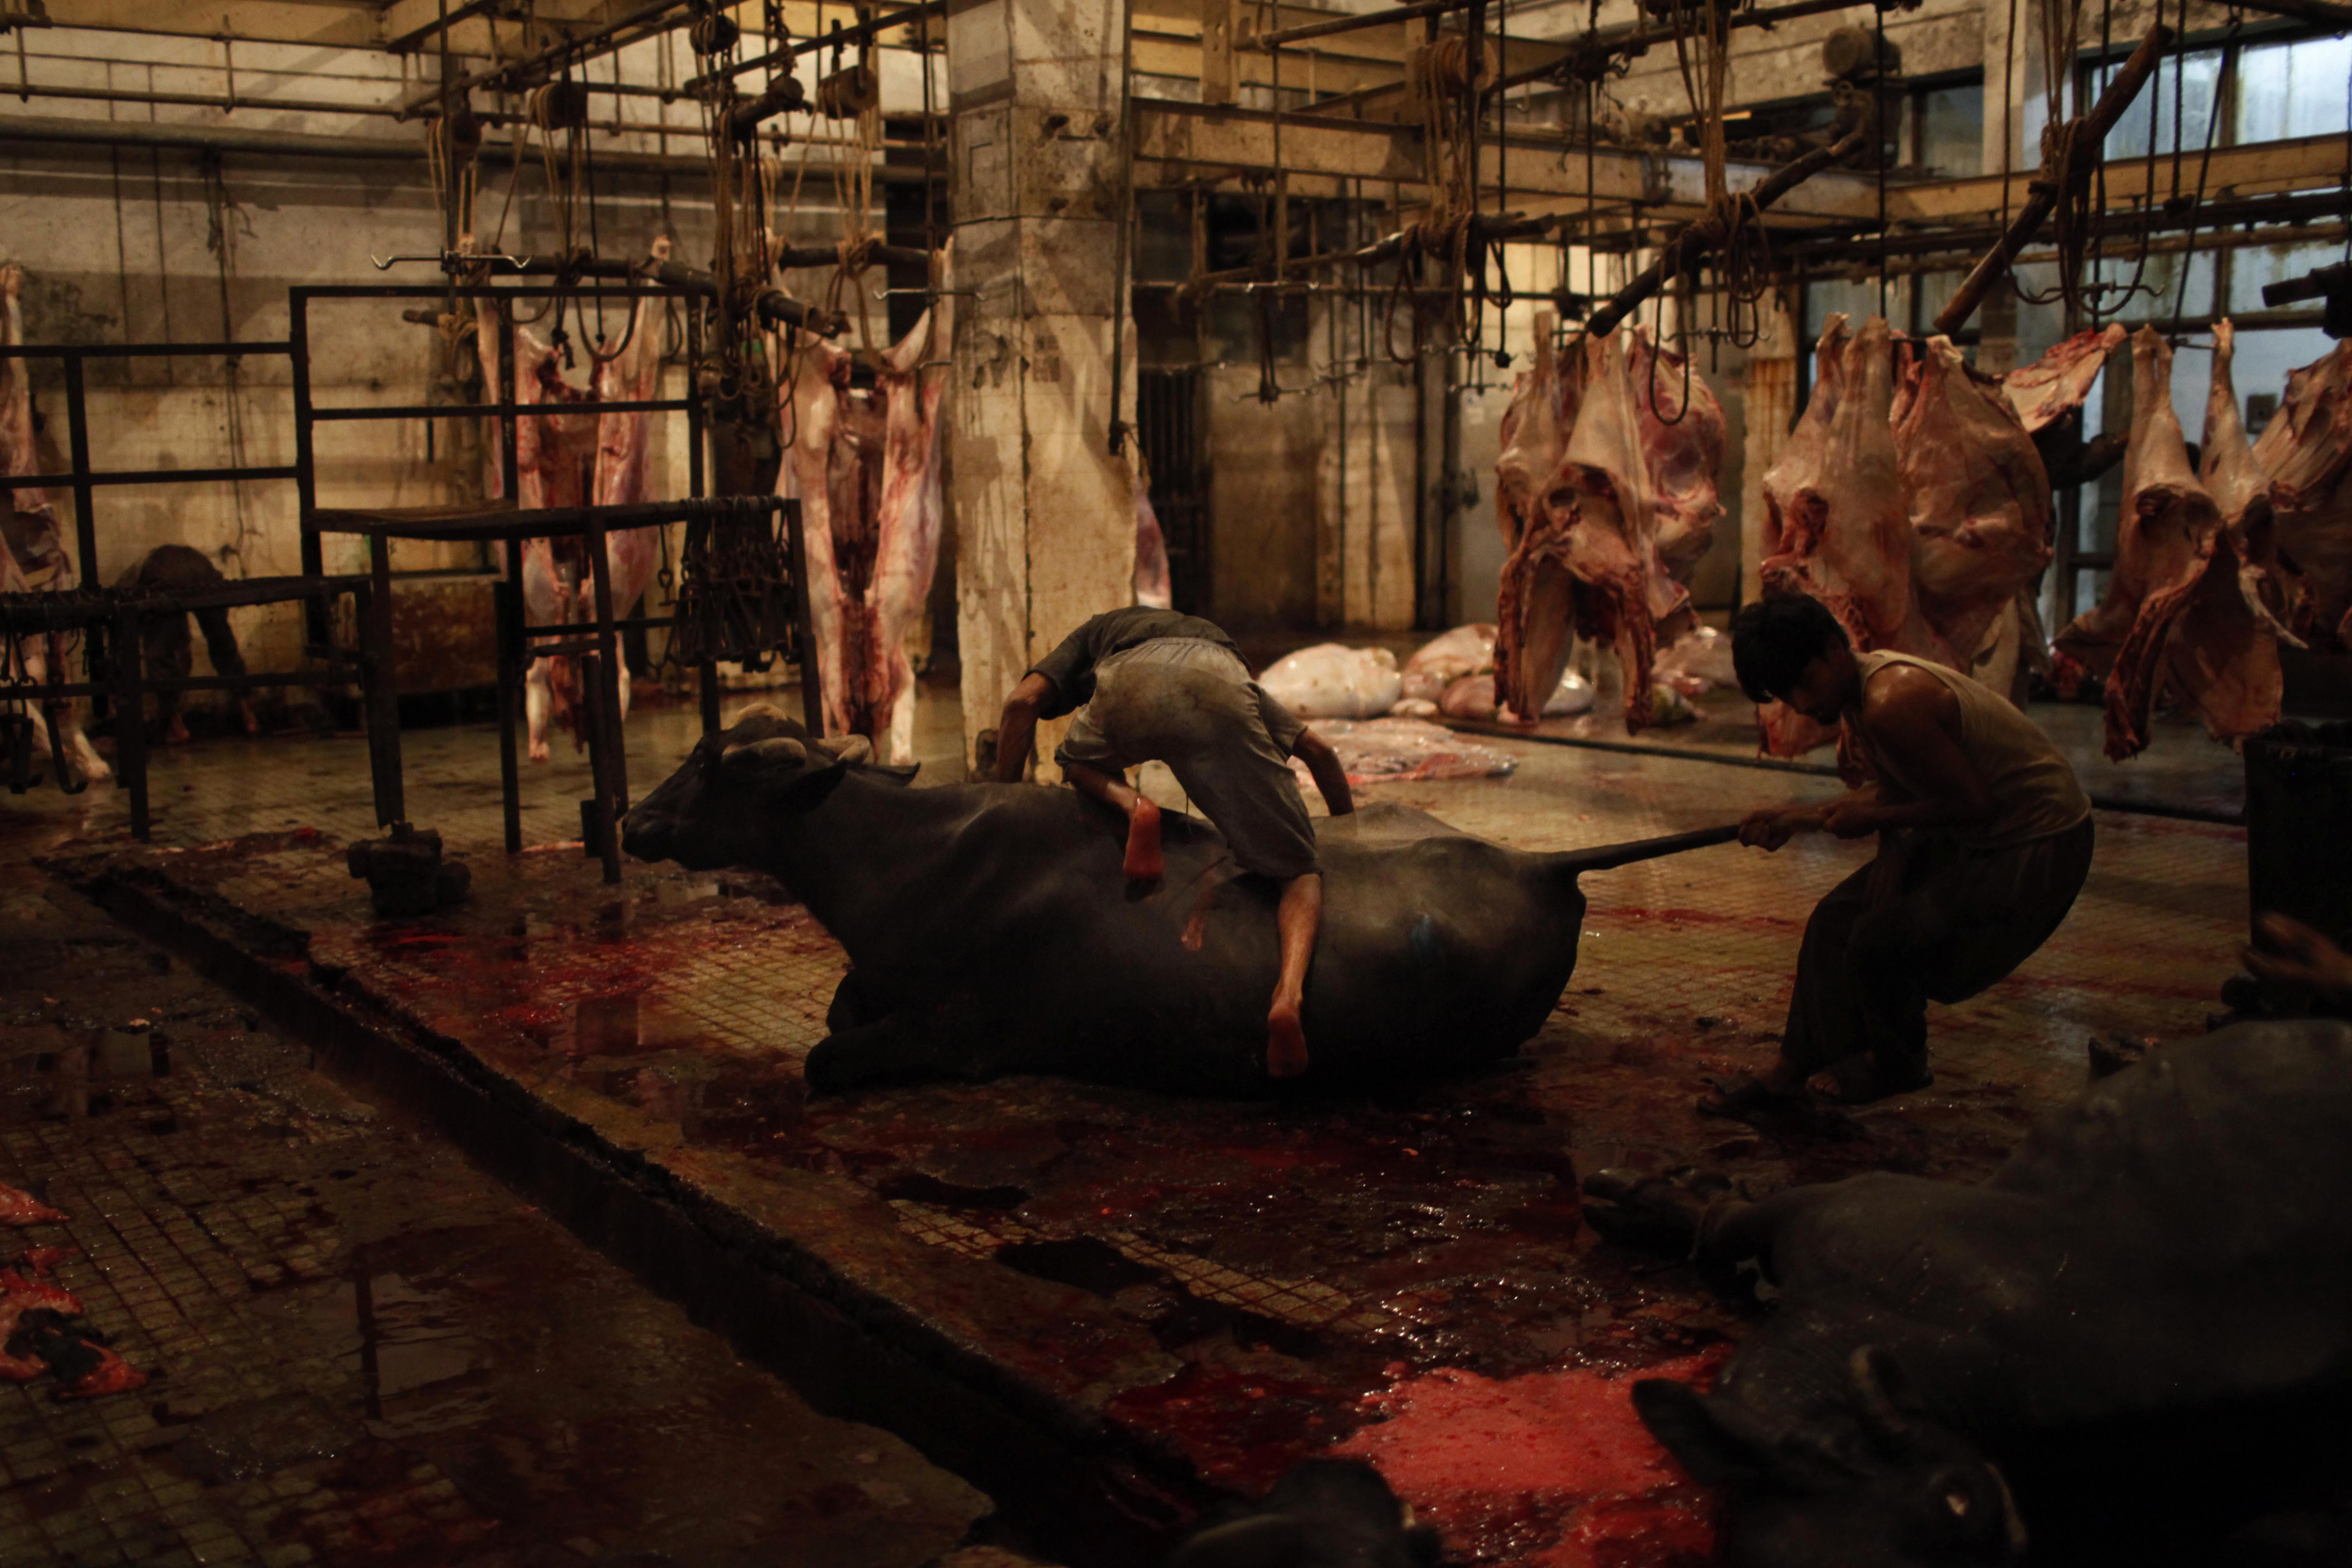 Pakistani Slaughterhouse